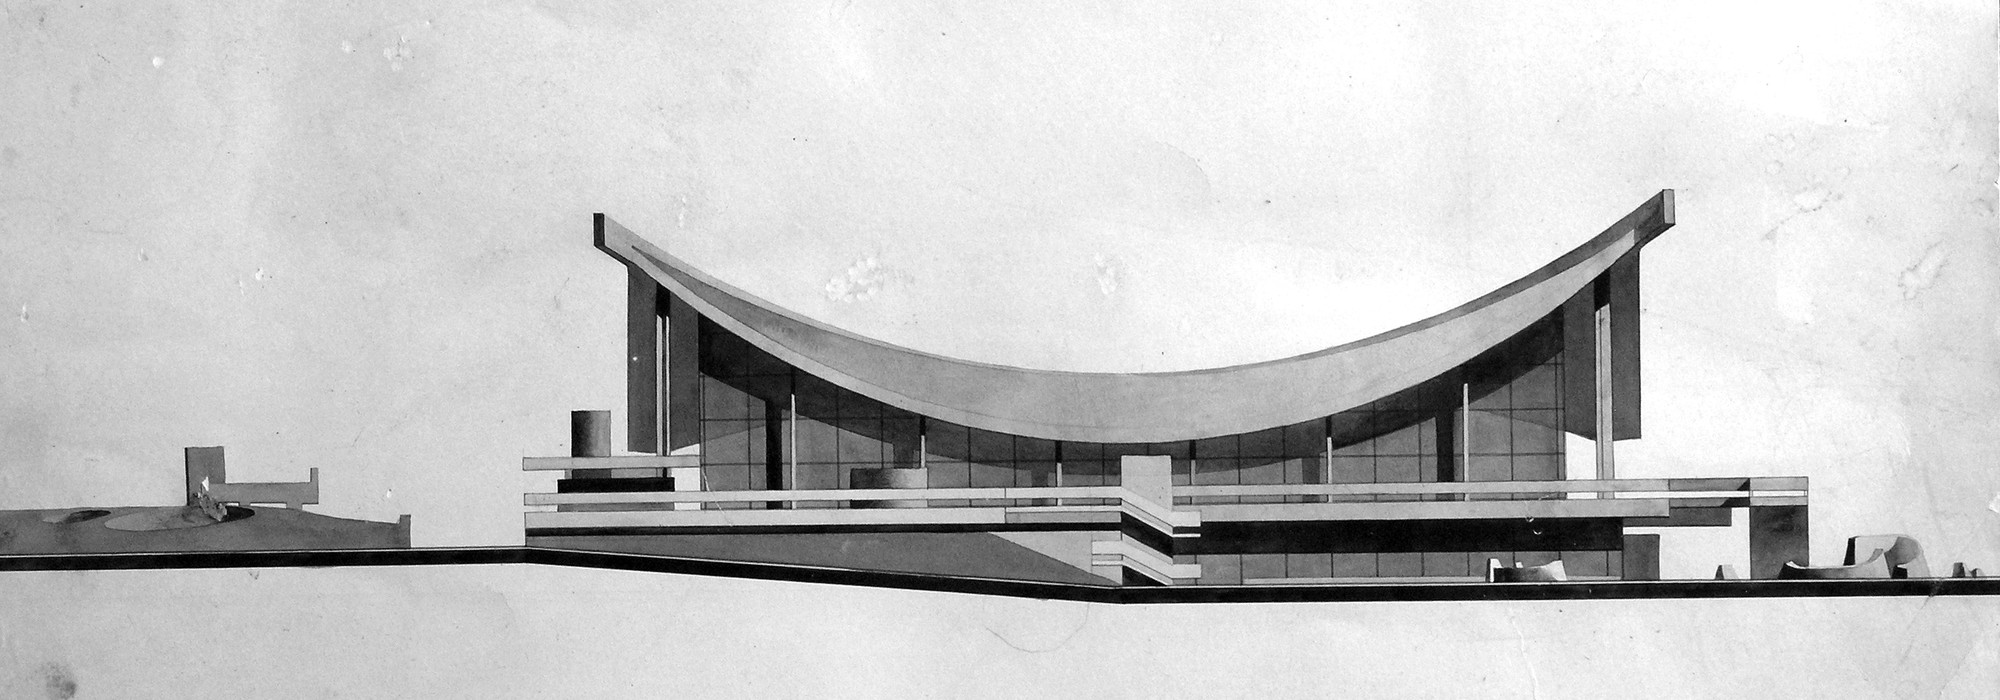 Gallery of superstructure 11 projects that defined kiev for Architecture 1970